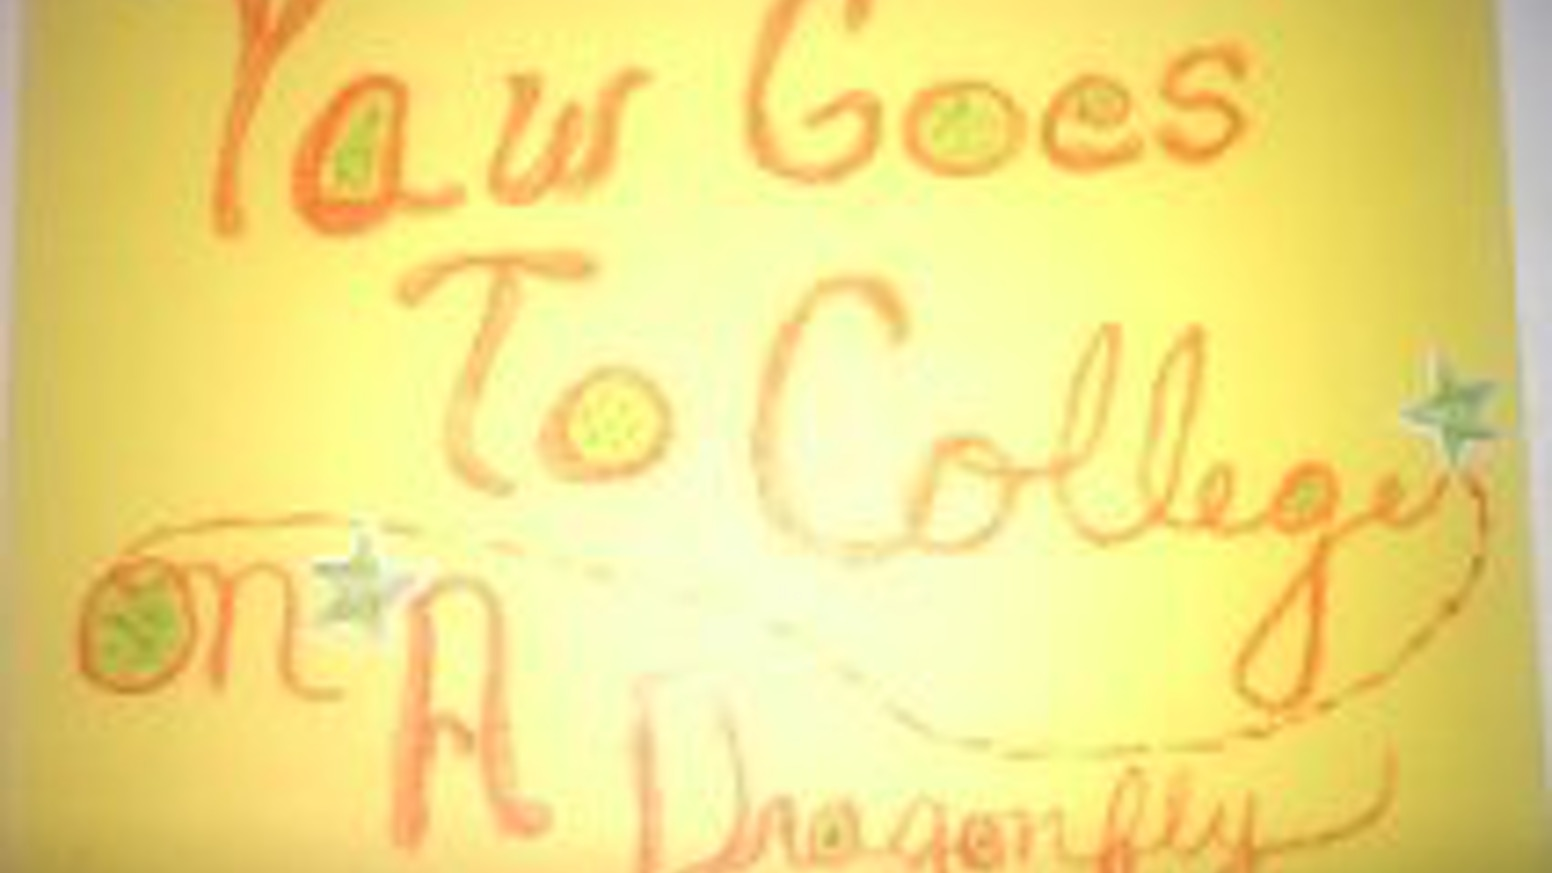 yaw goes to college on a dragonfly by shawna day ama akyia